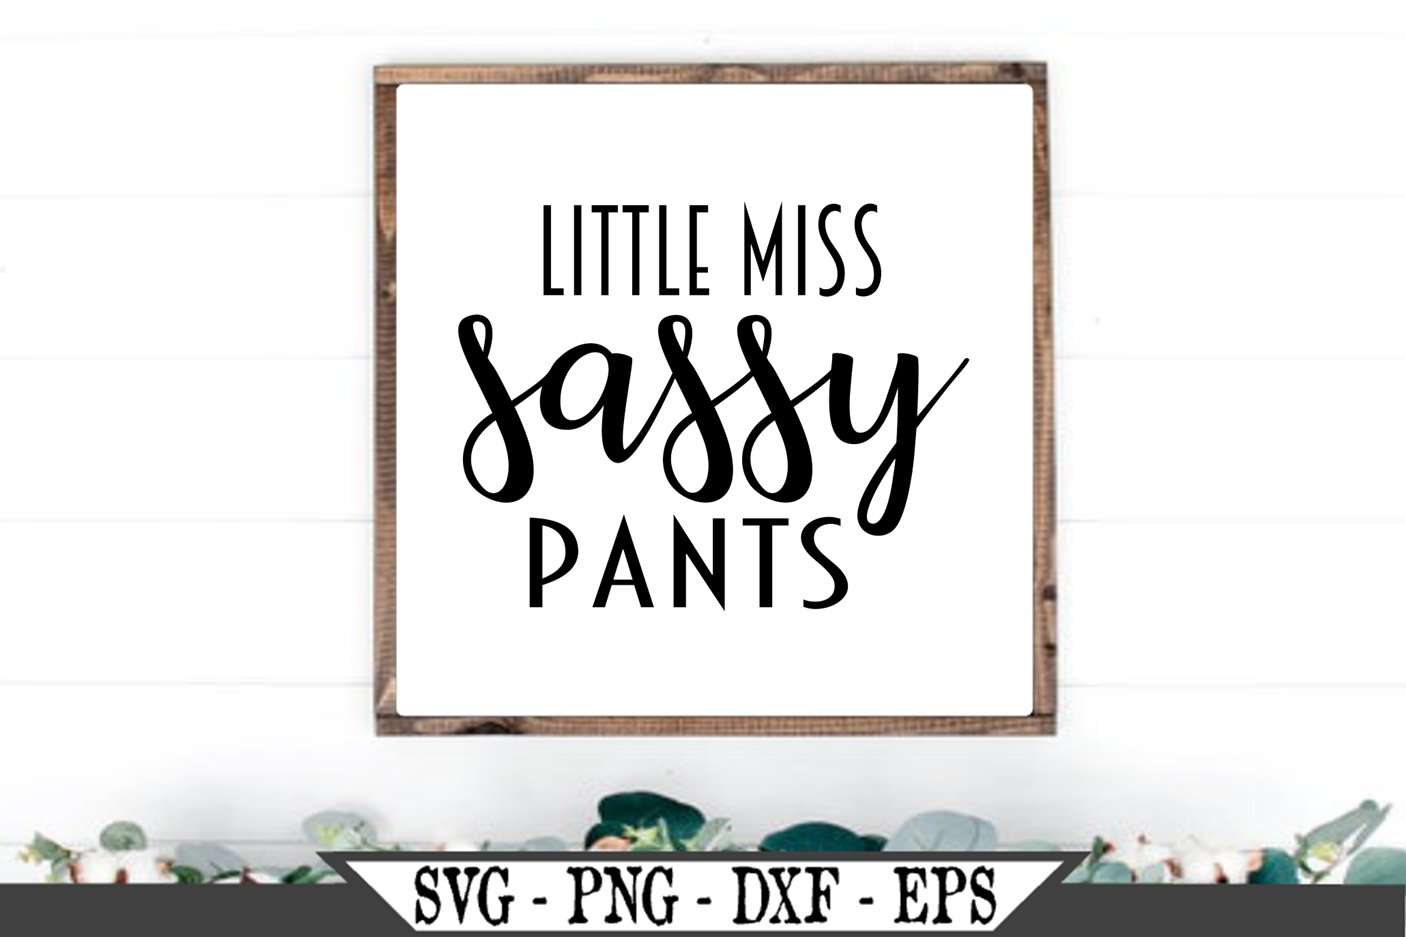 Little Miss Sassy Pants SVG example image 1